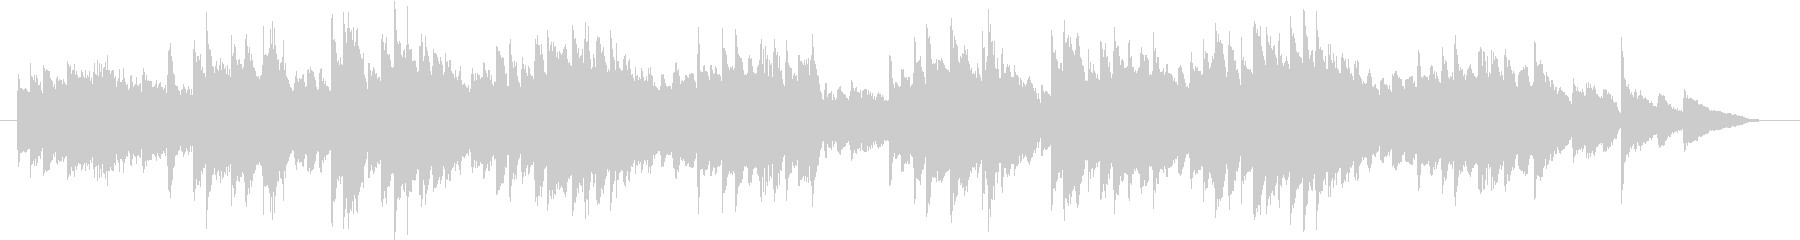 English folk song simple piano fast's unreproduced waveform